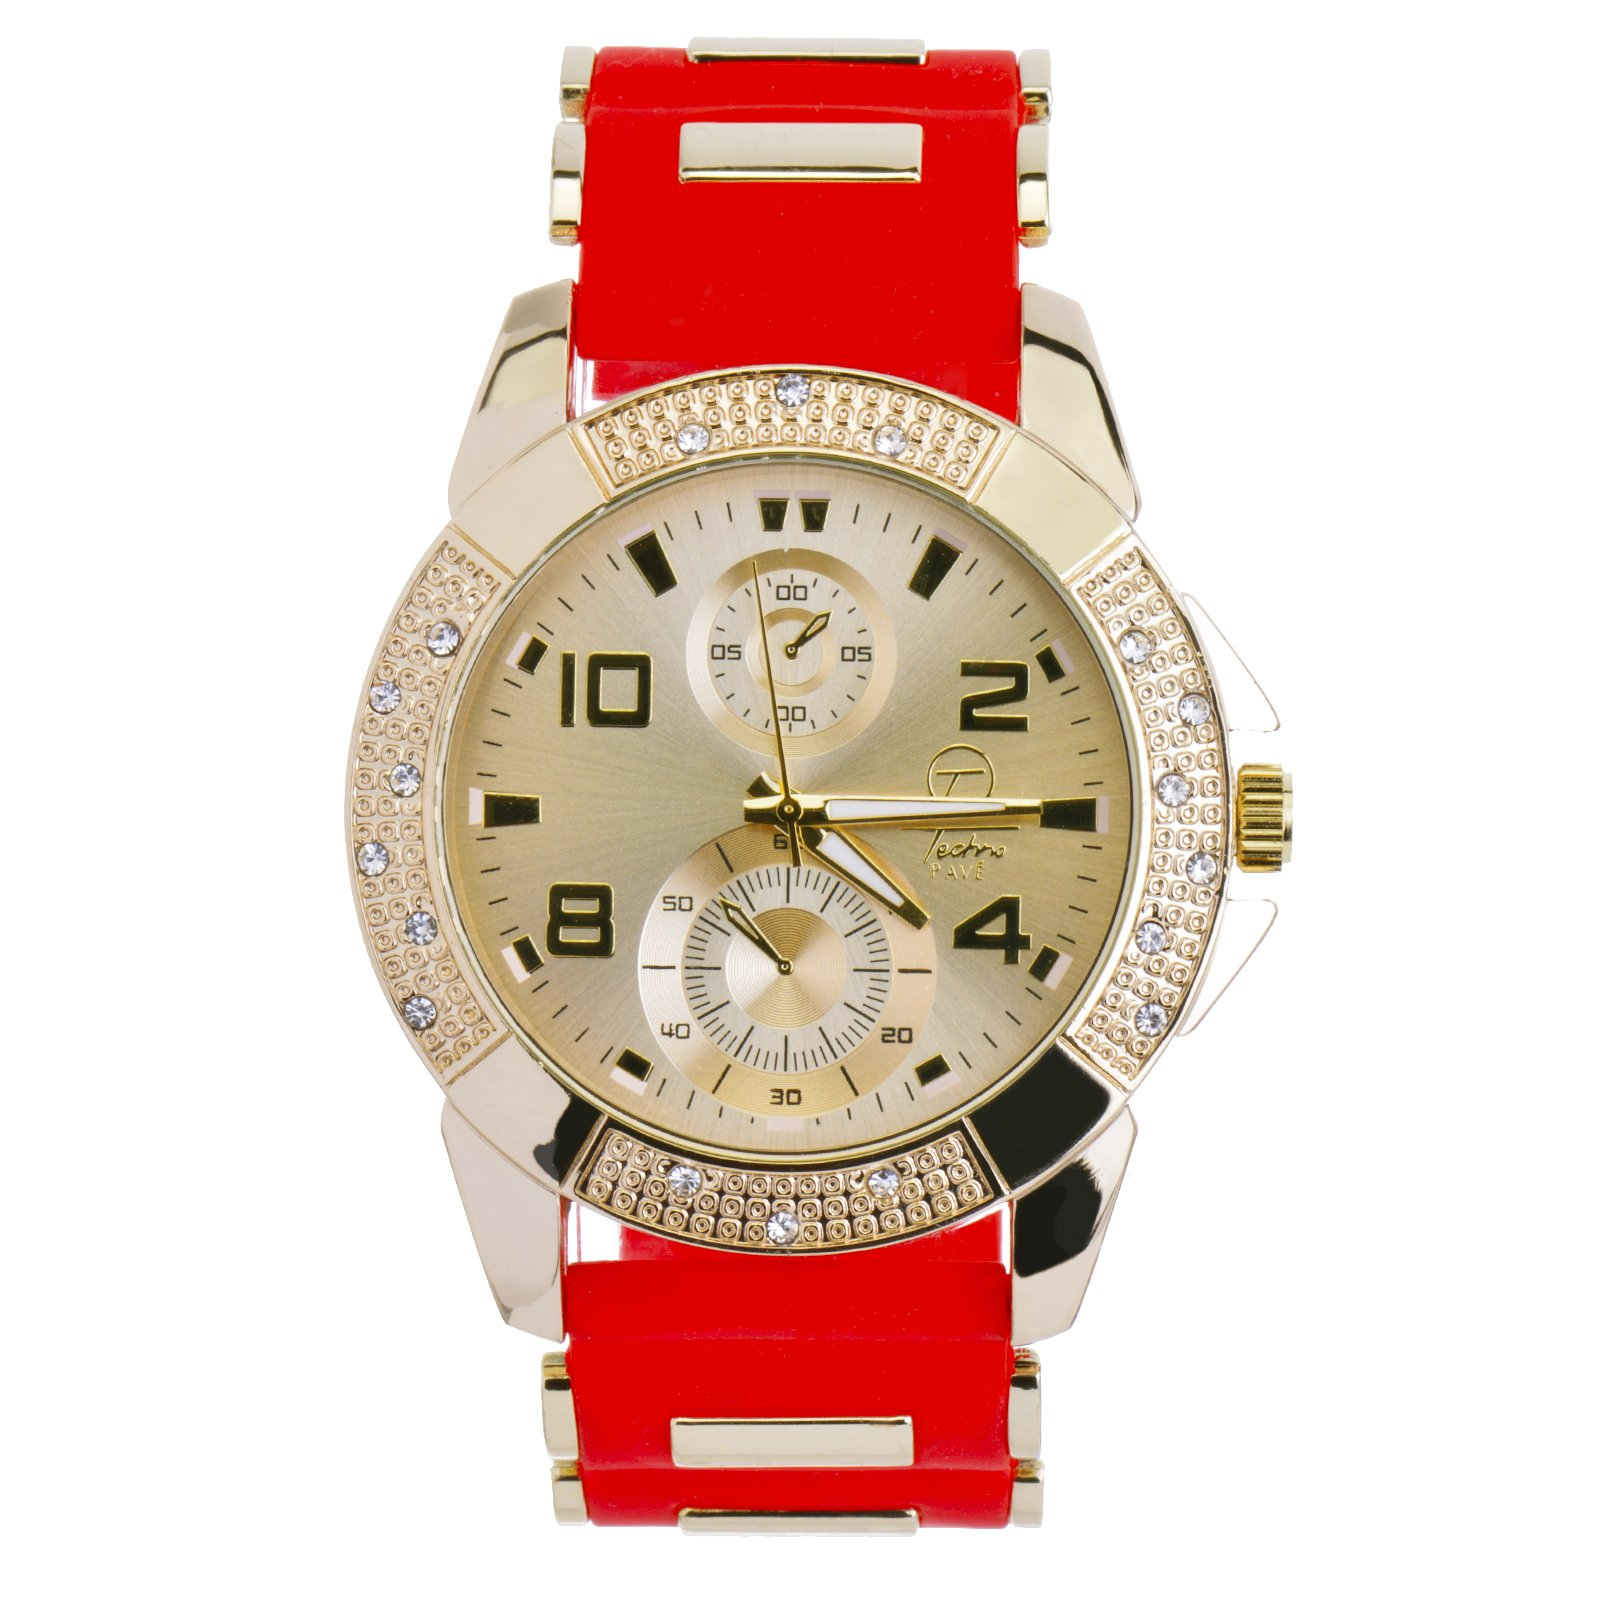 Techno Pave Men's Gold Plated Red Rubber Band Hip Hop Bling Iced Out Stoned Watches WR 8485 GRD